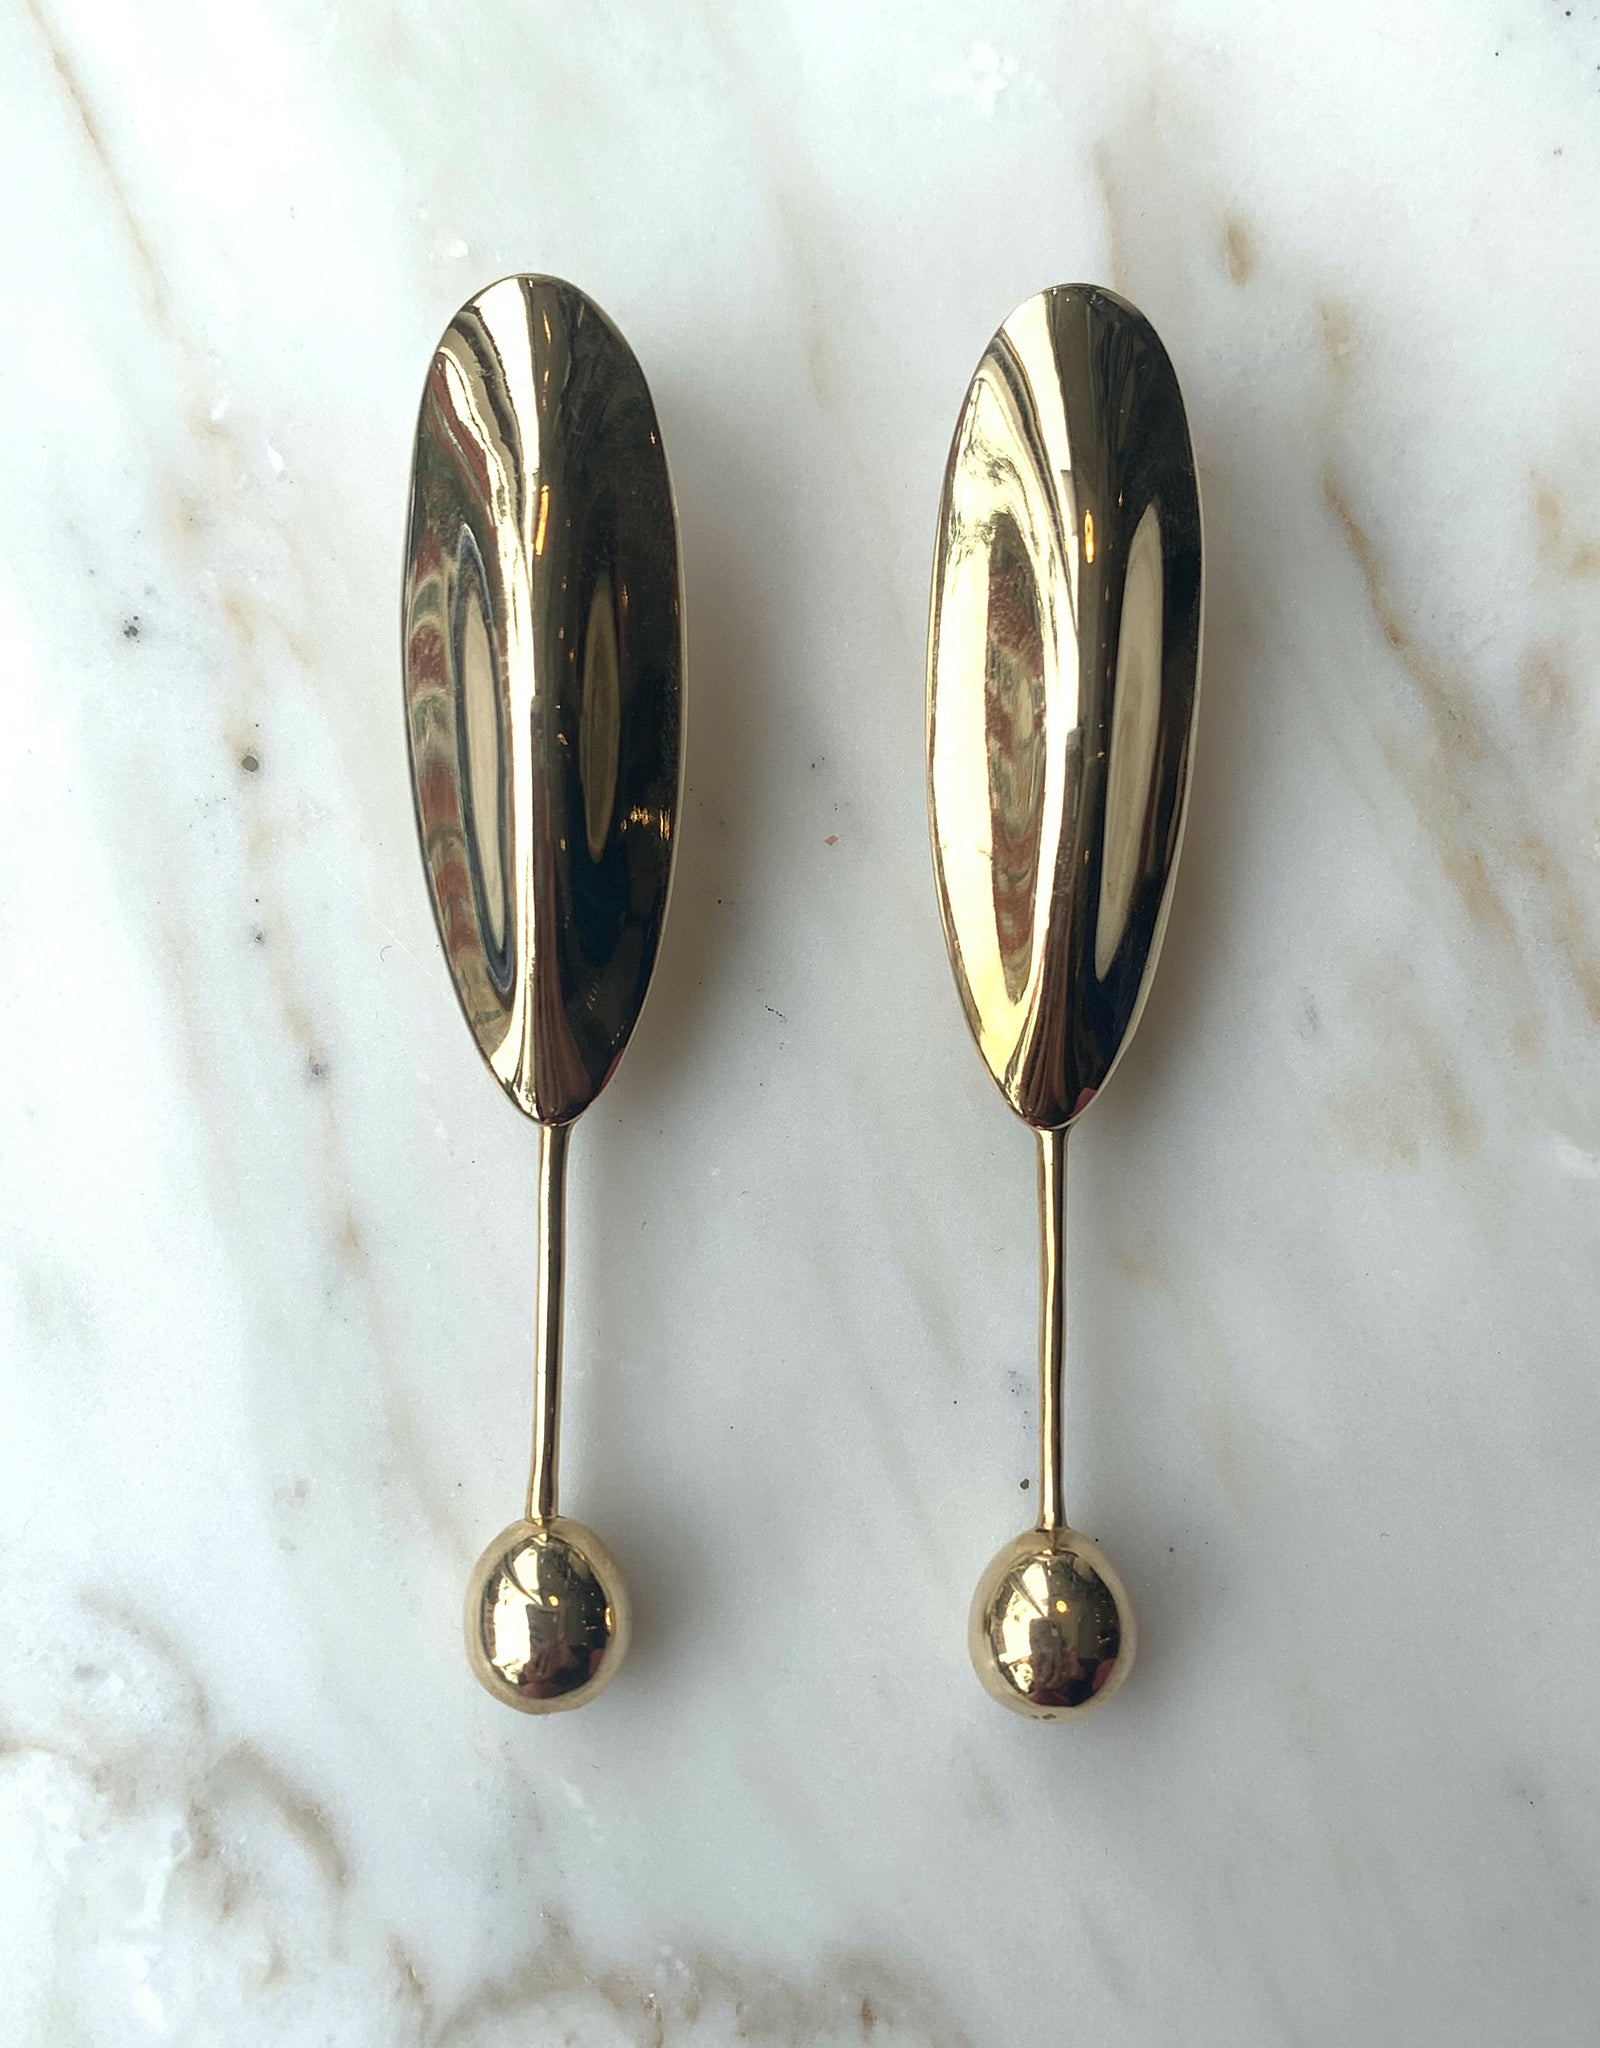 Quarry brass Duras Earring. Available at FAWN Toronto.